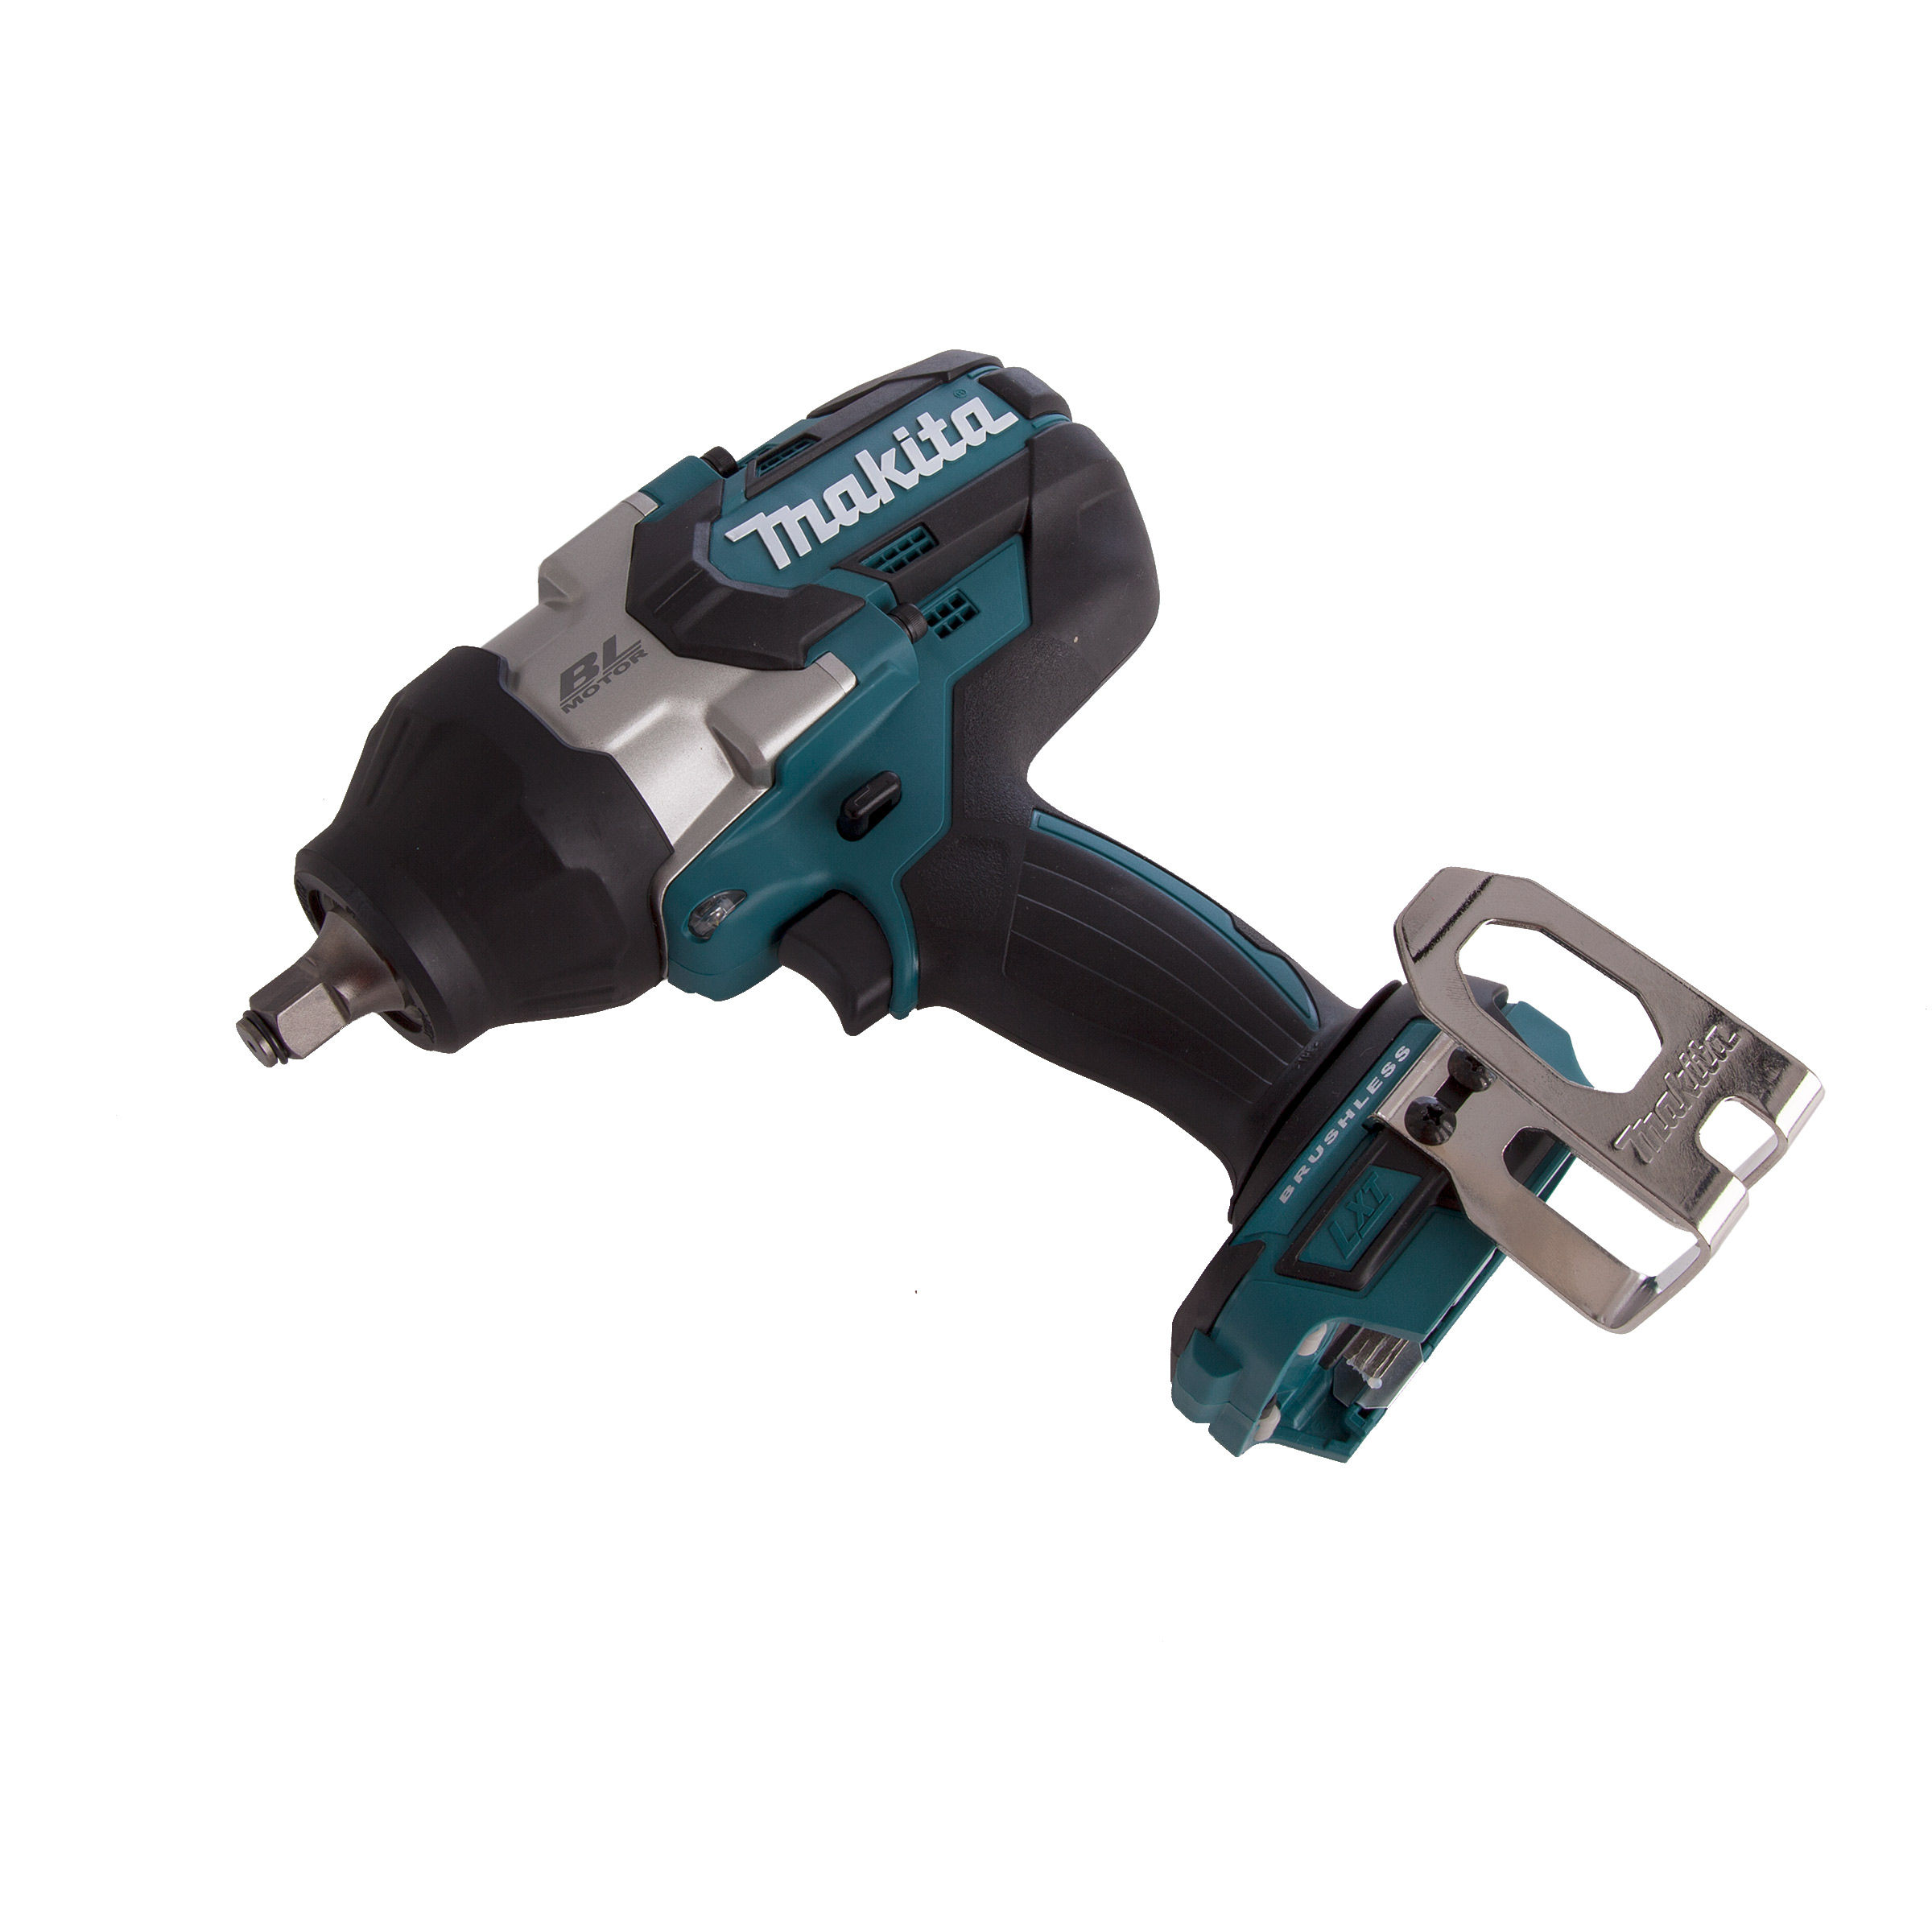 Makita Dtw1002z Impact Wrench 18v Brushless Lxt Li Ion 1 2 Inch Square Drive